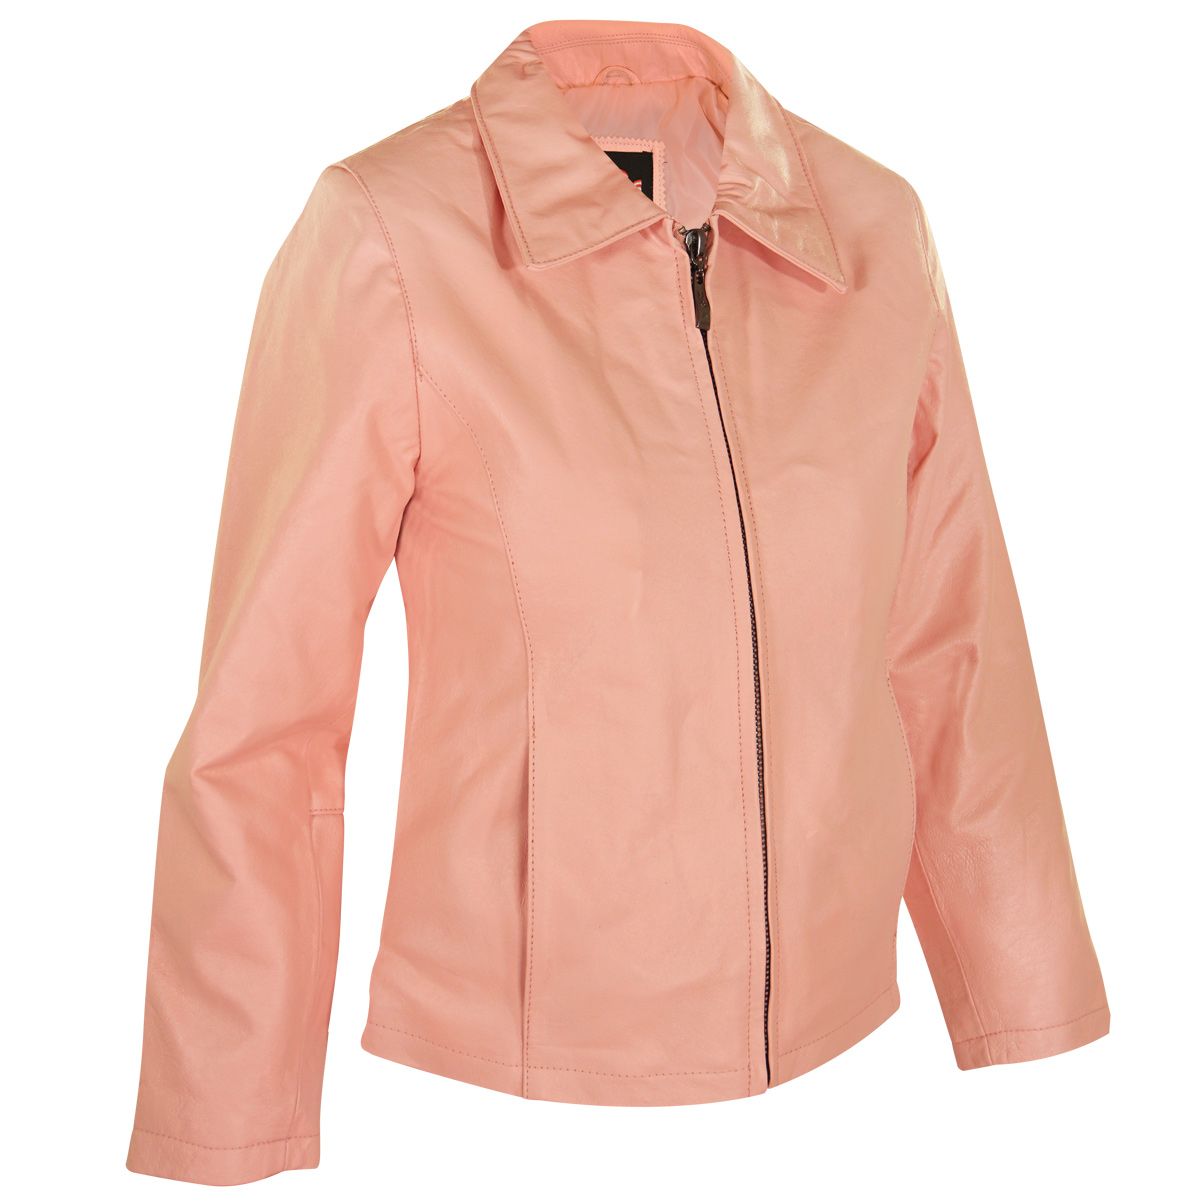 USA Leather Womens Pink Short Zipper Leather Jacket